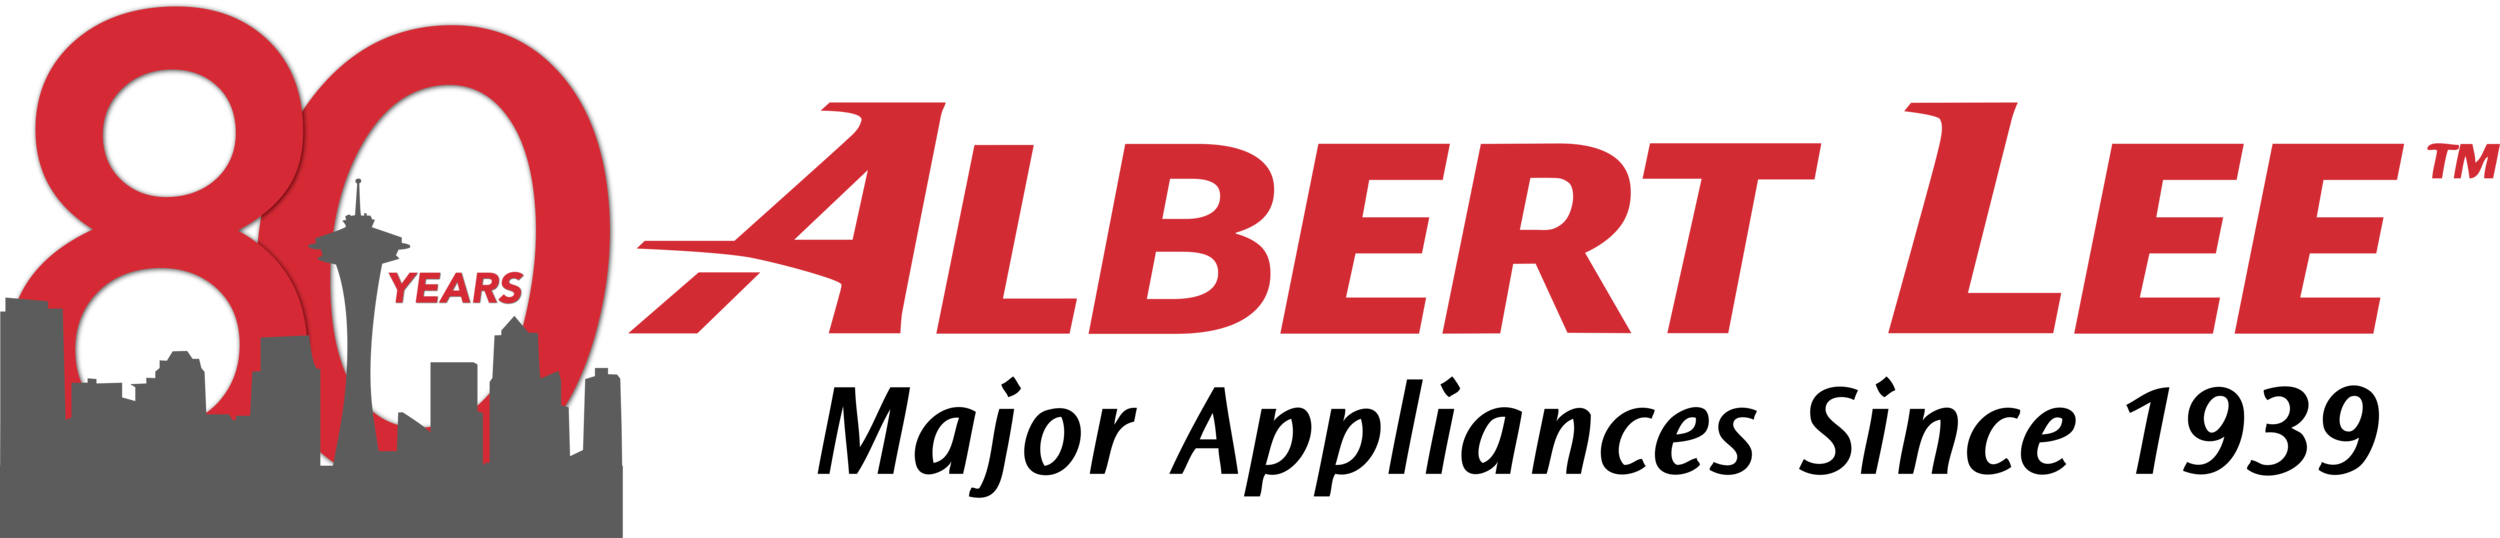 Albert Lee 80 Year Logo horizontal.png